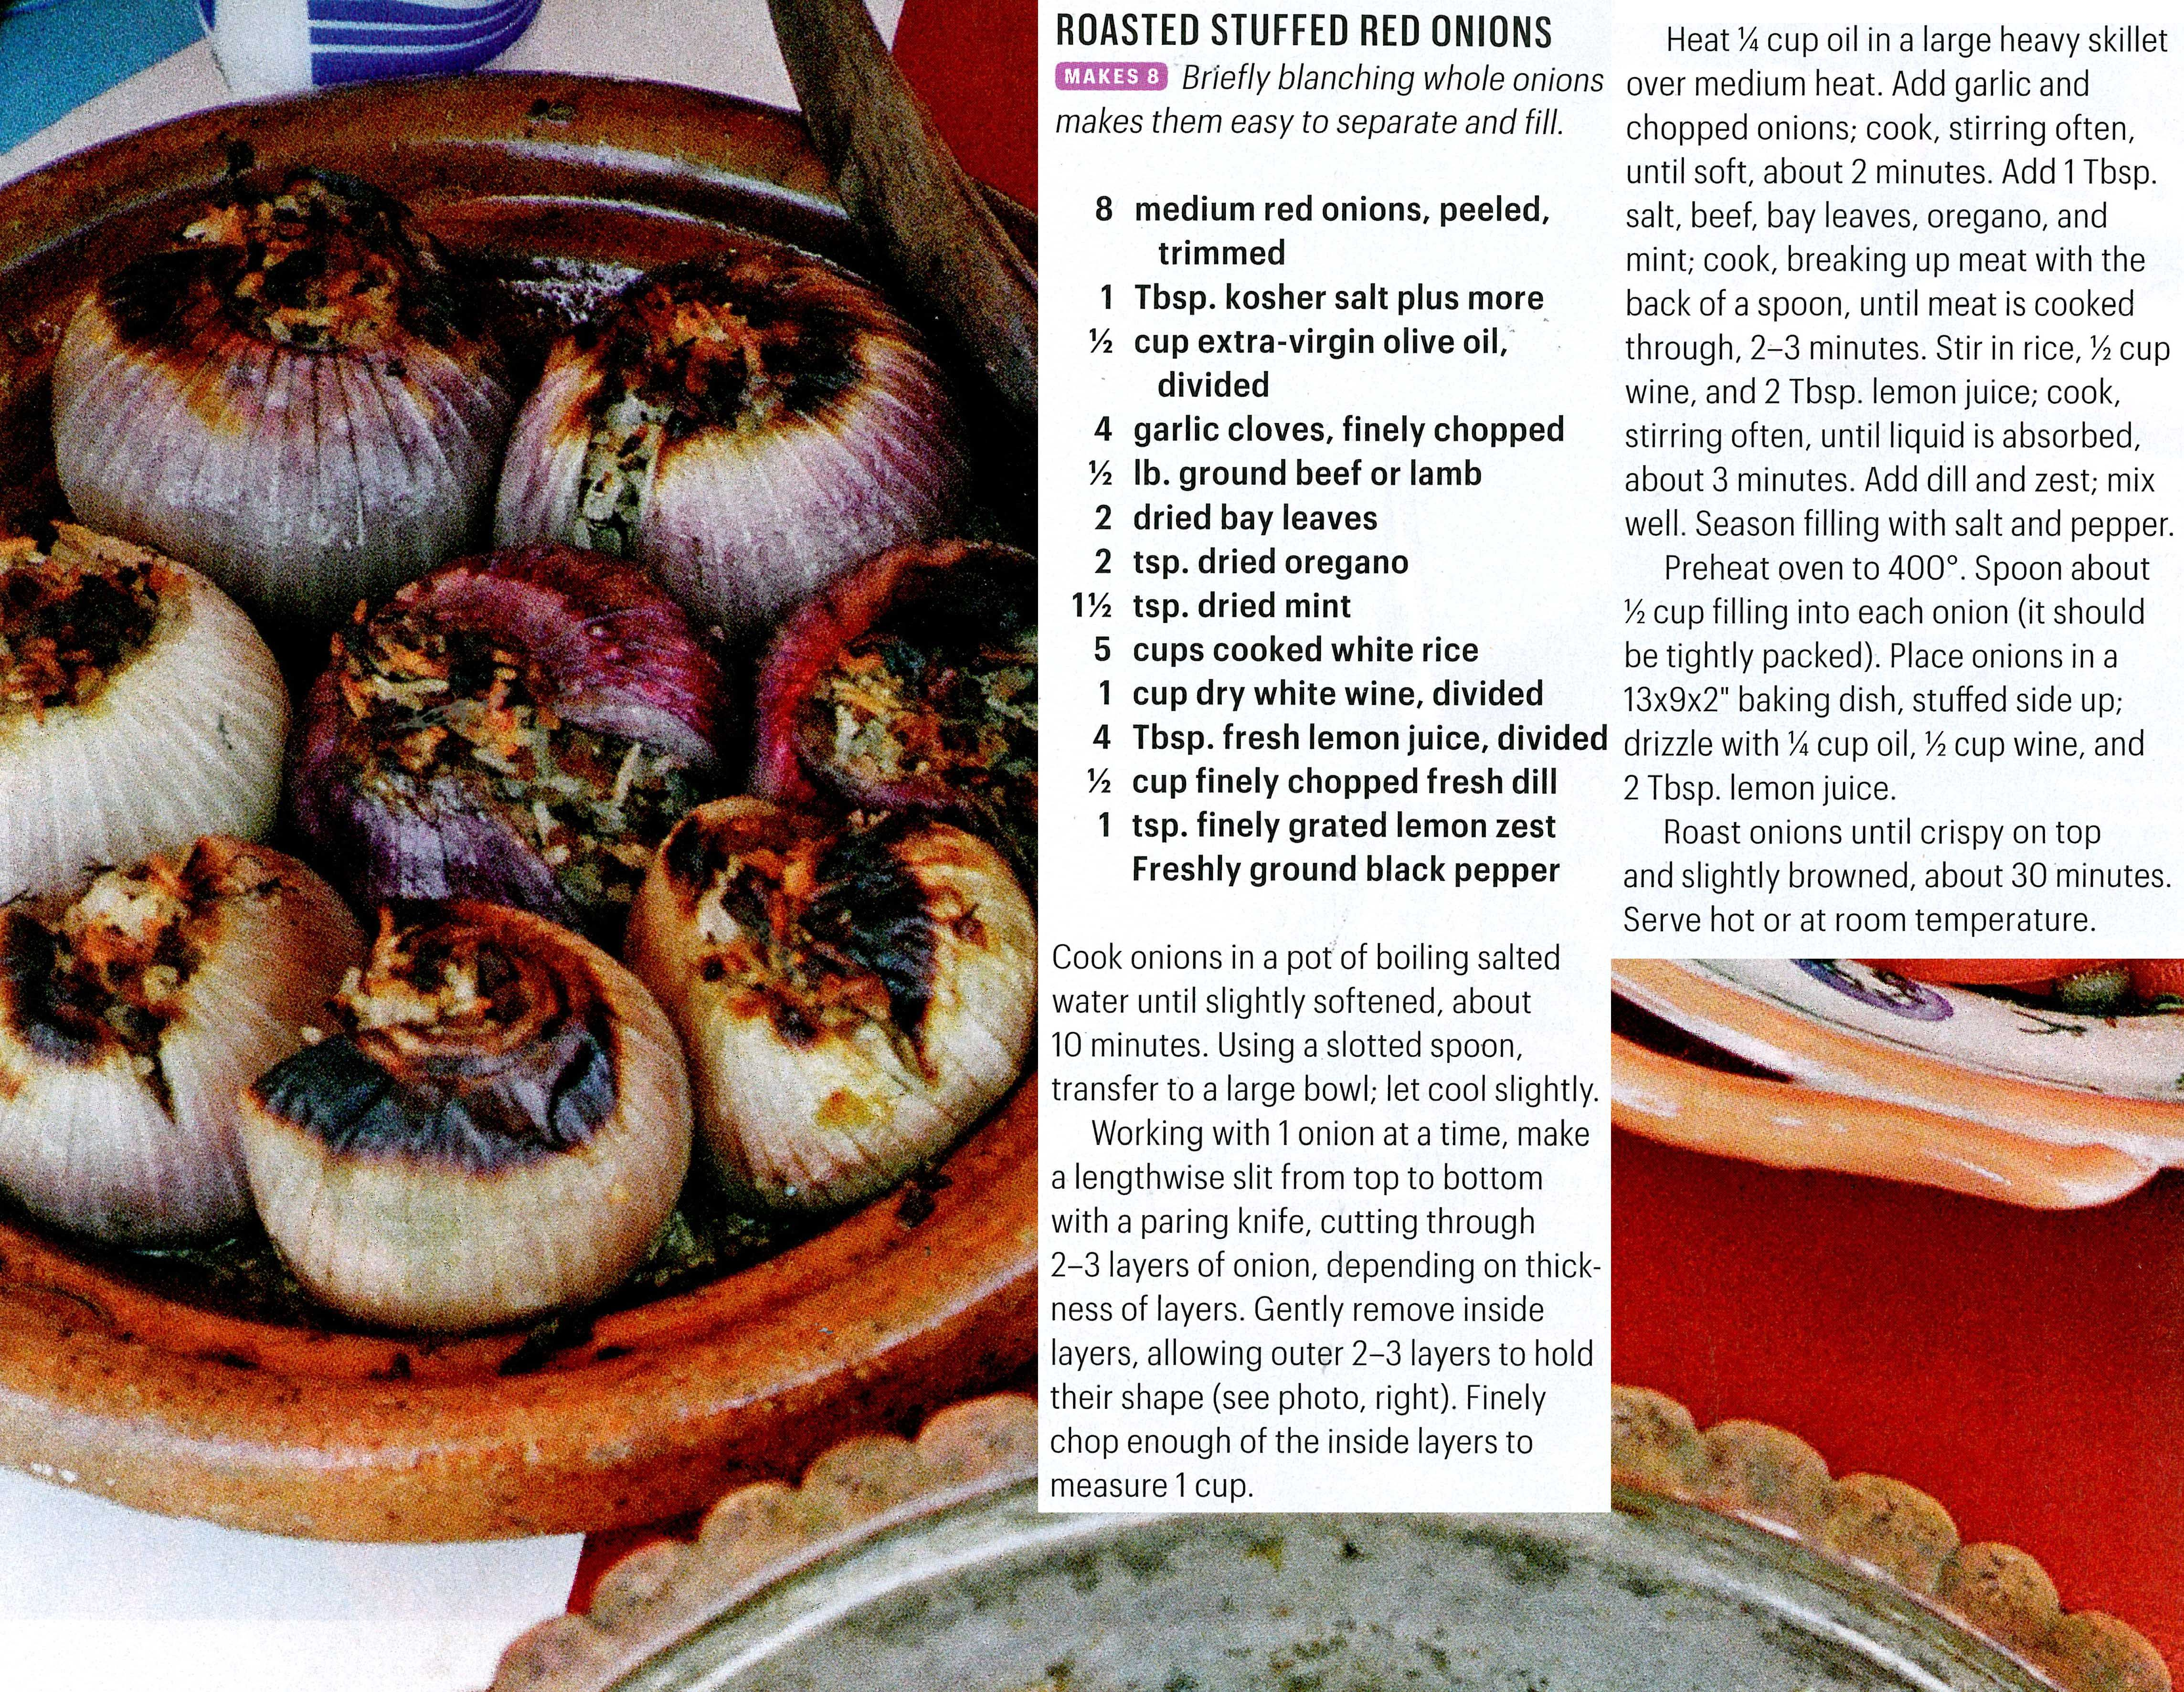 Roasted Stuffed Red Onions Recipe Dishmaps